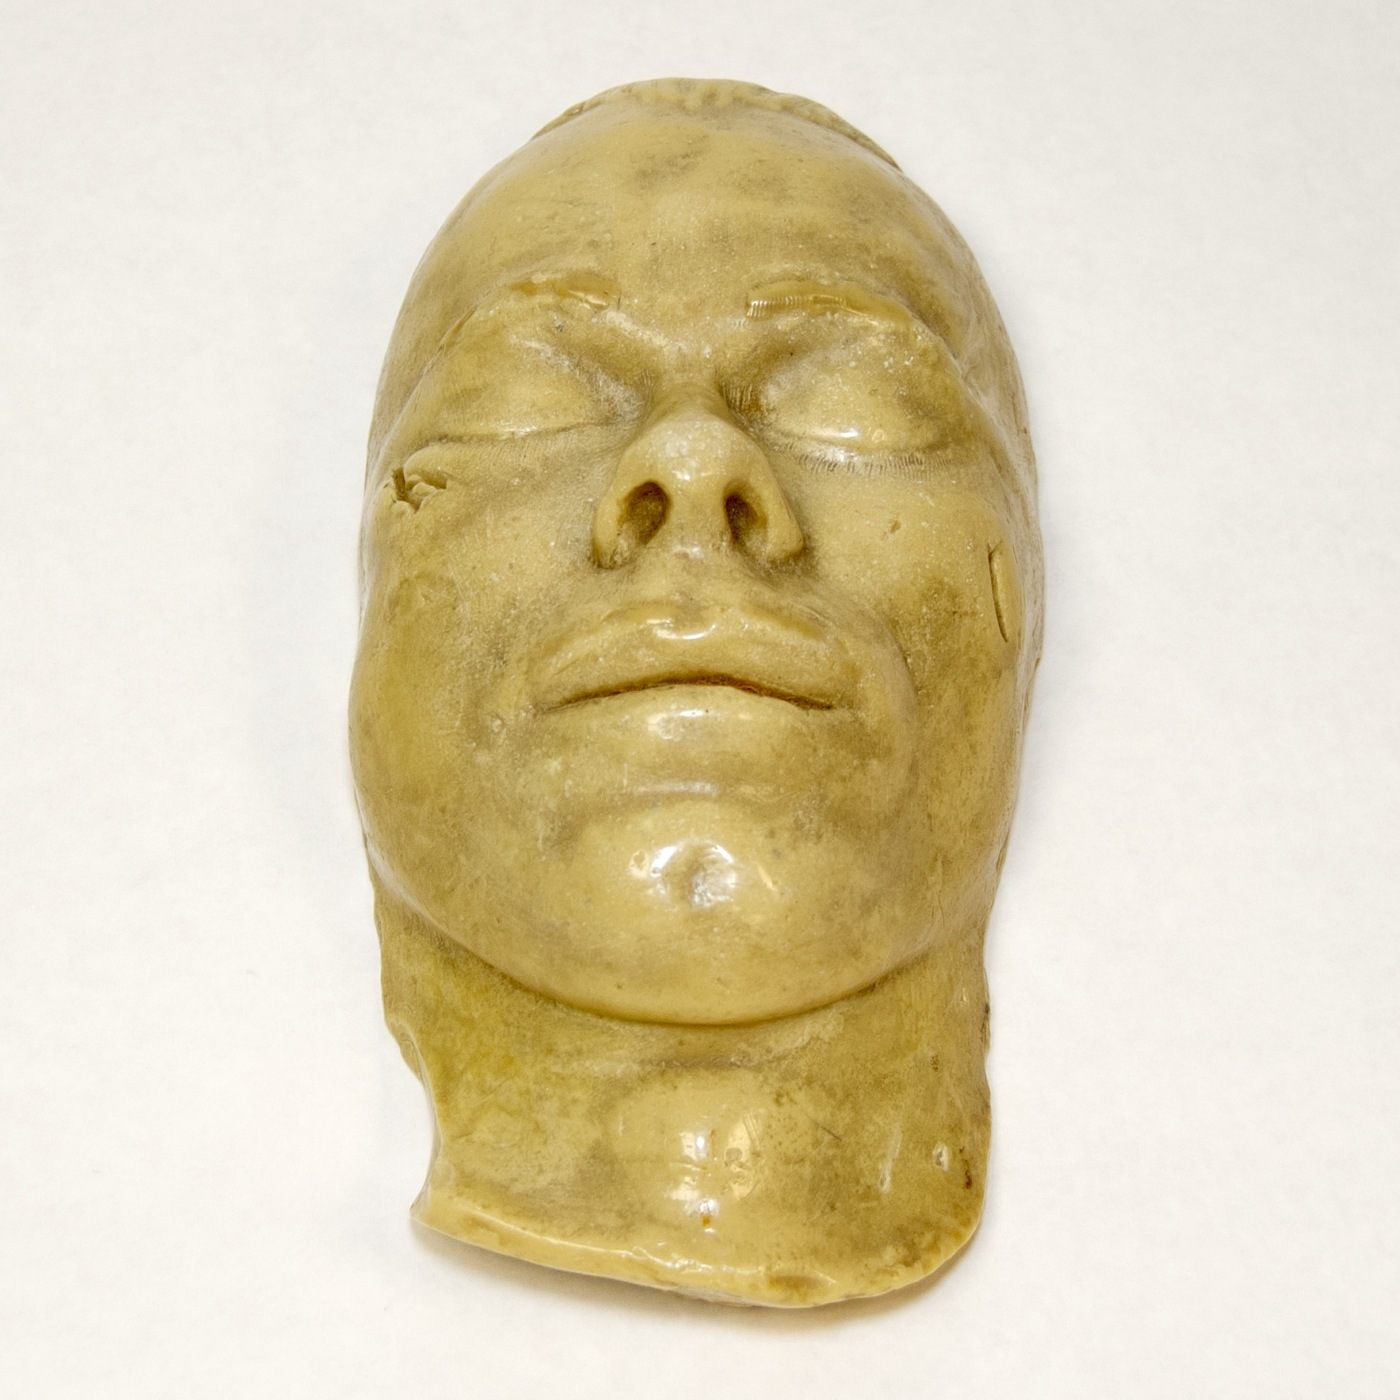 Photo of a death mask, made after the death of notorious gangster John Dillinger.